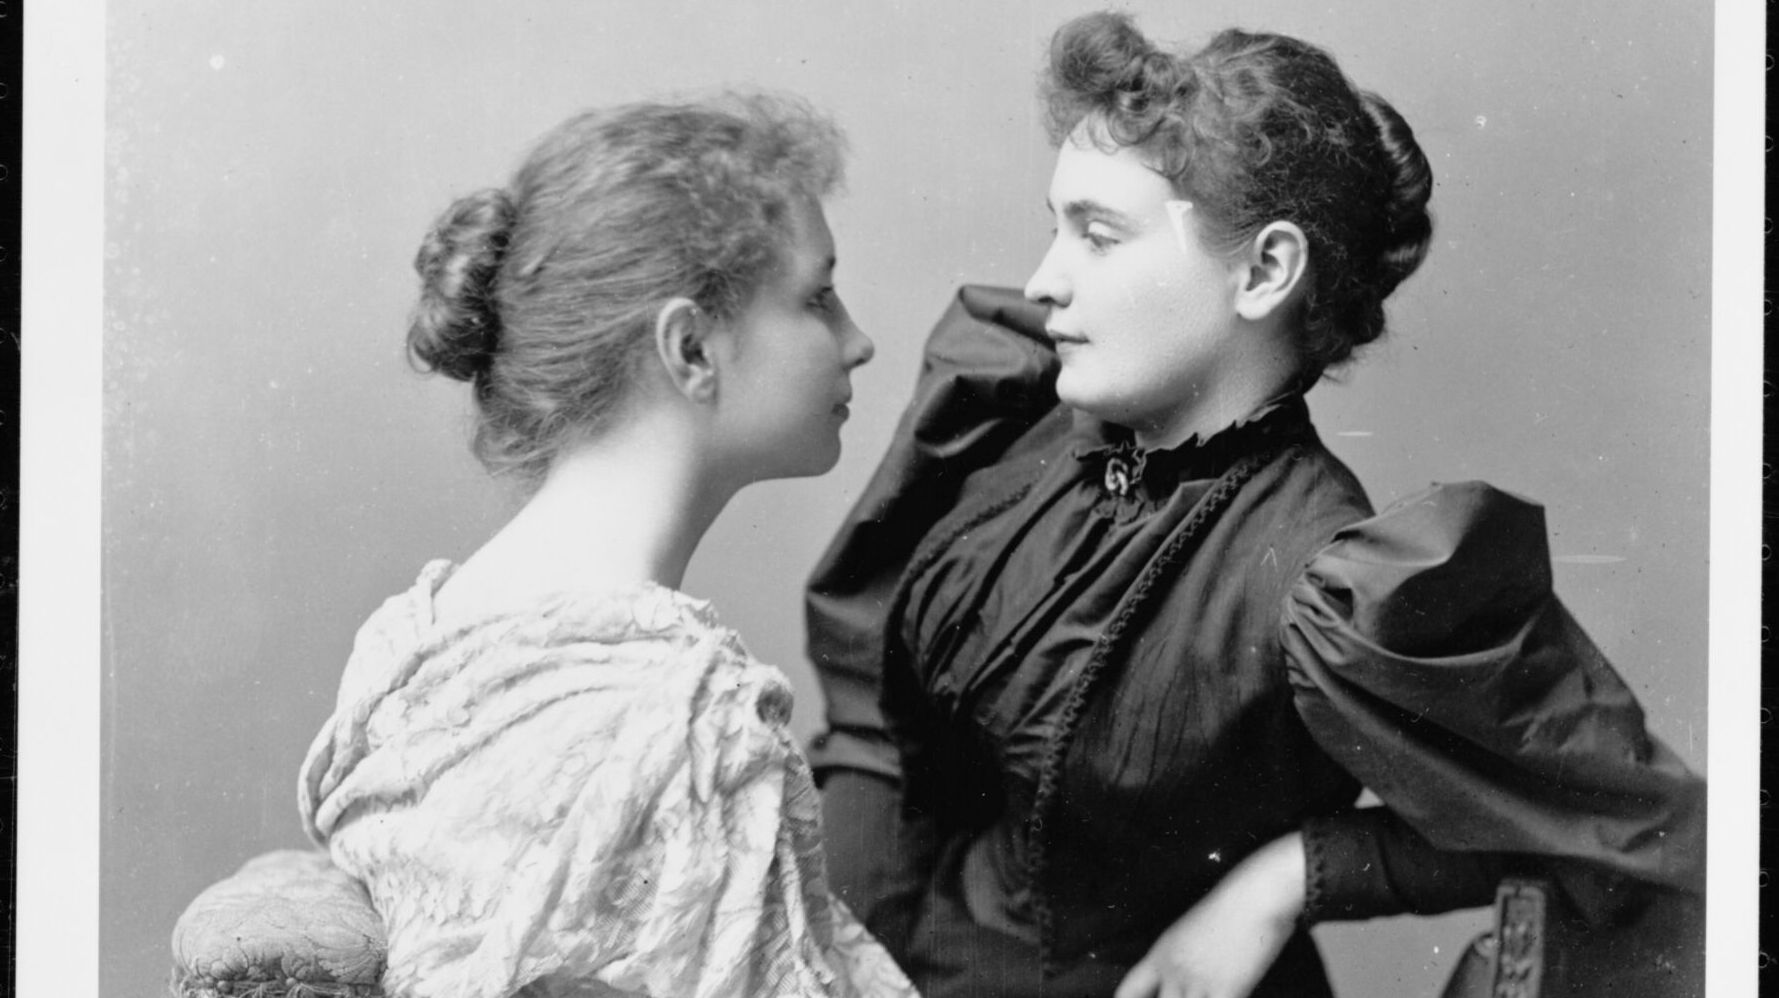 Two young women face each other while sitting on a bench. They both have hair loosely swept into bun and curly bangs. To right, the taller woman wears a formal dark gown with puffy sleeves. The other woman wears a loose fitting light-color top.